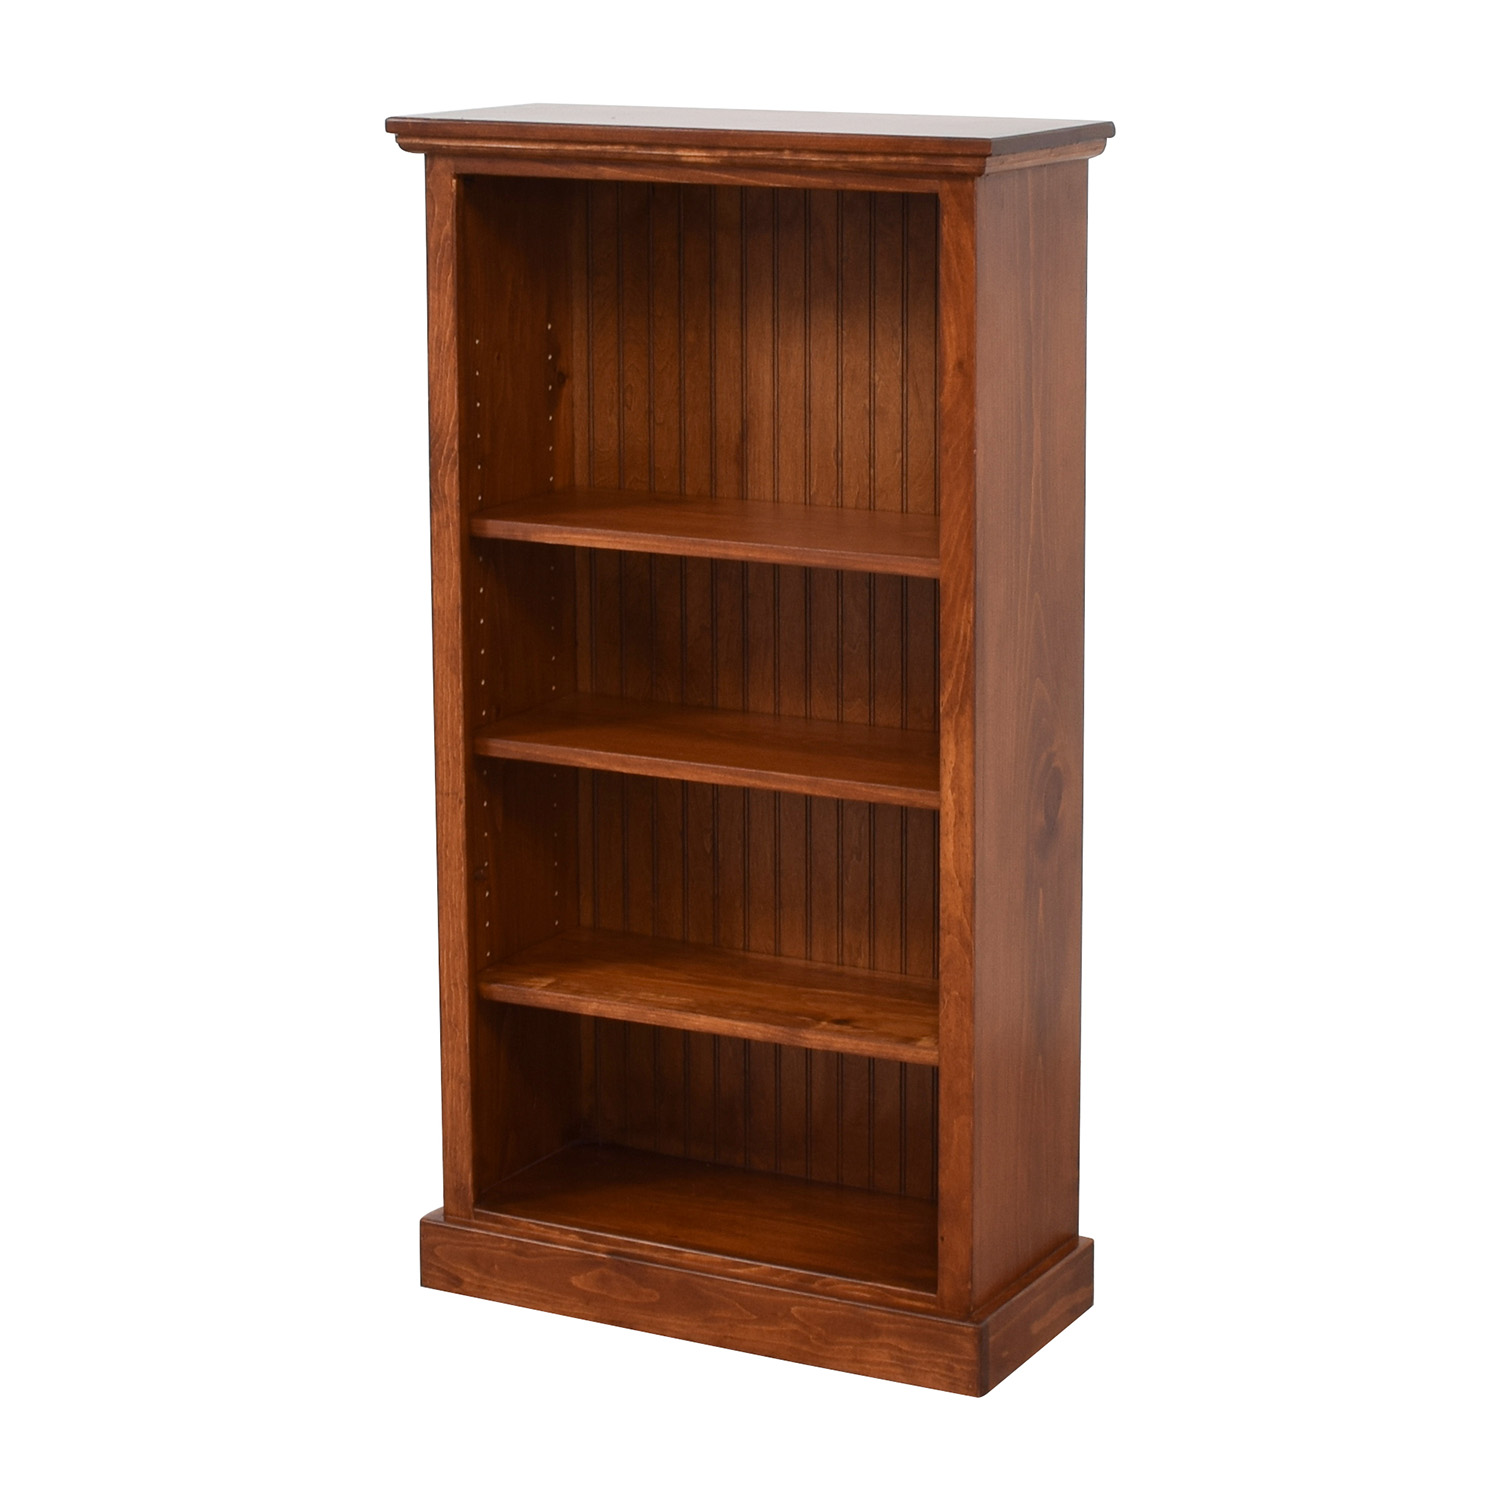 Gothic Cabinet Craft Four Shelf Bookcase sale